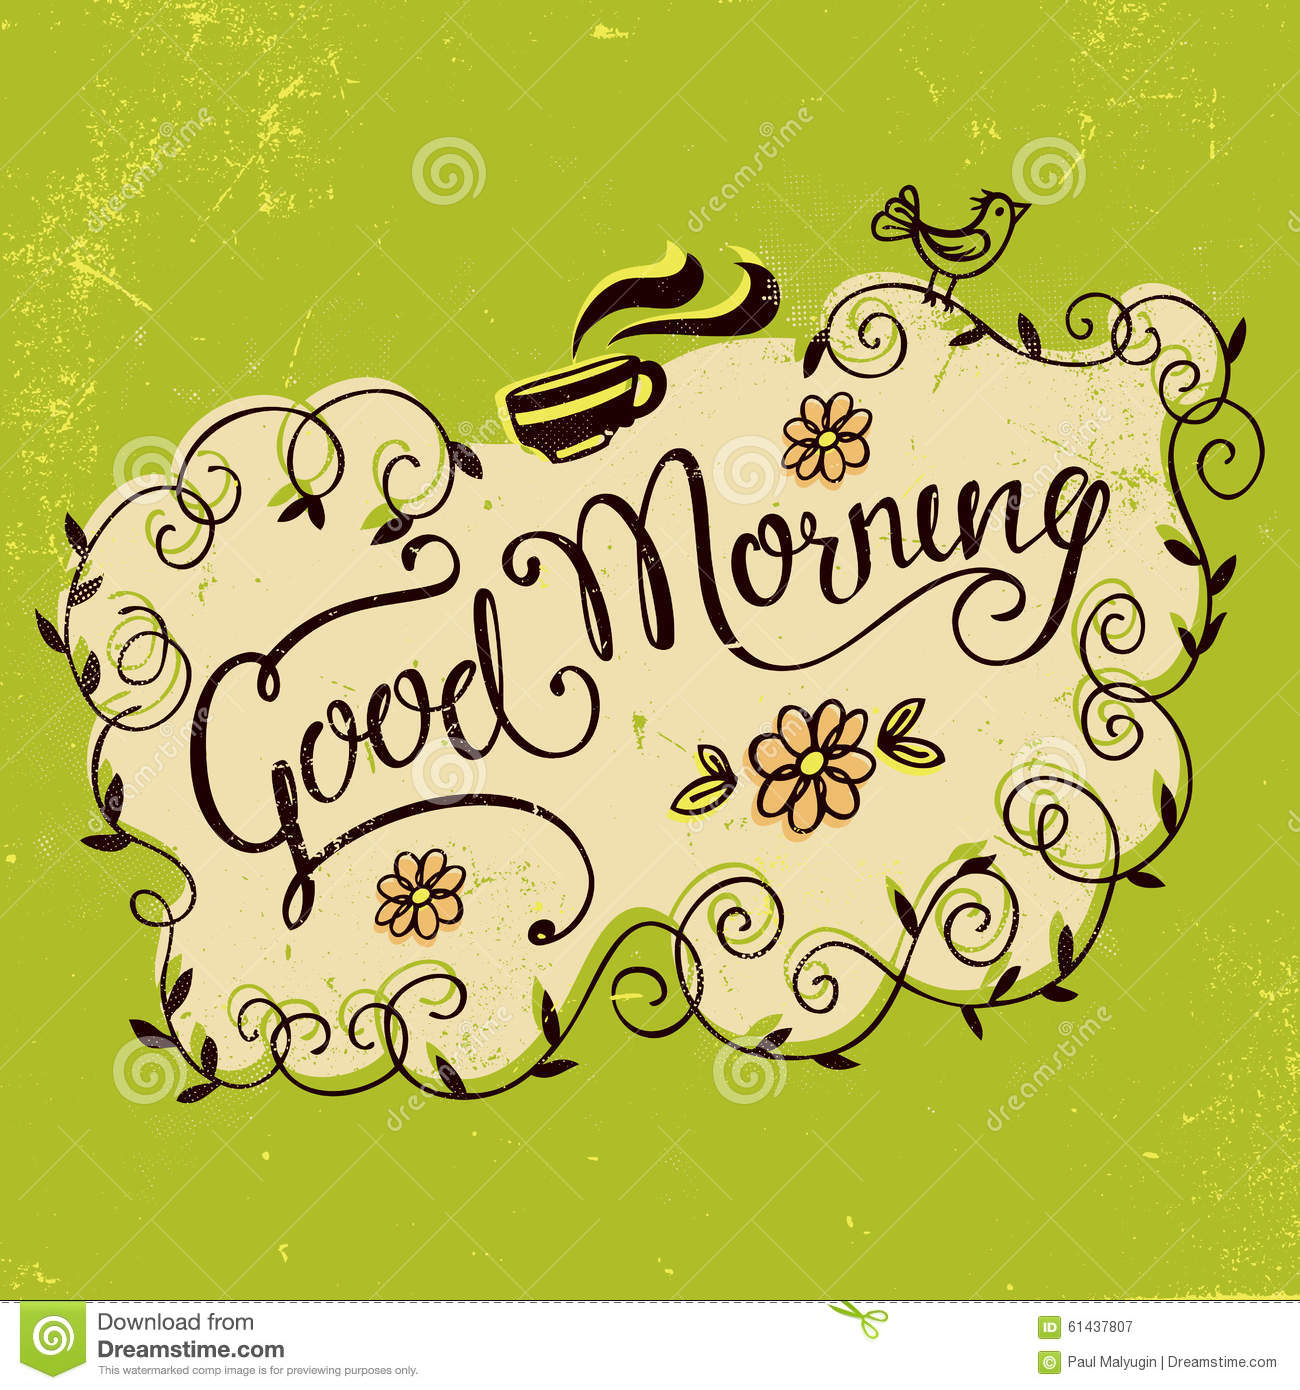 Good Morning Vintage Photos : Good morning vintage hand lettering stock vector image